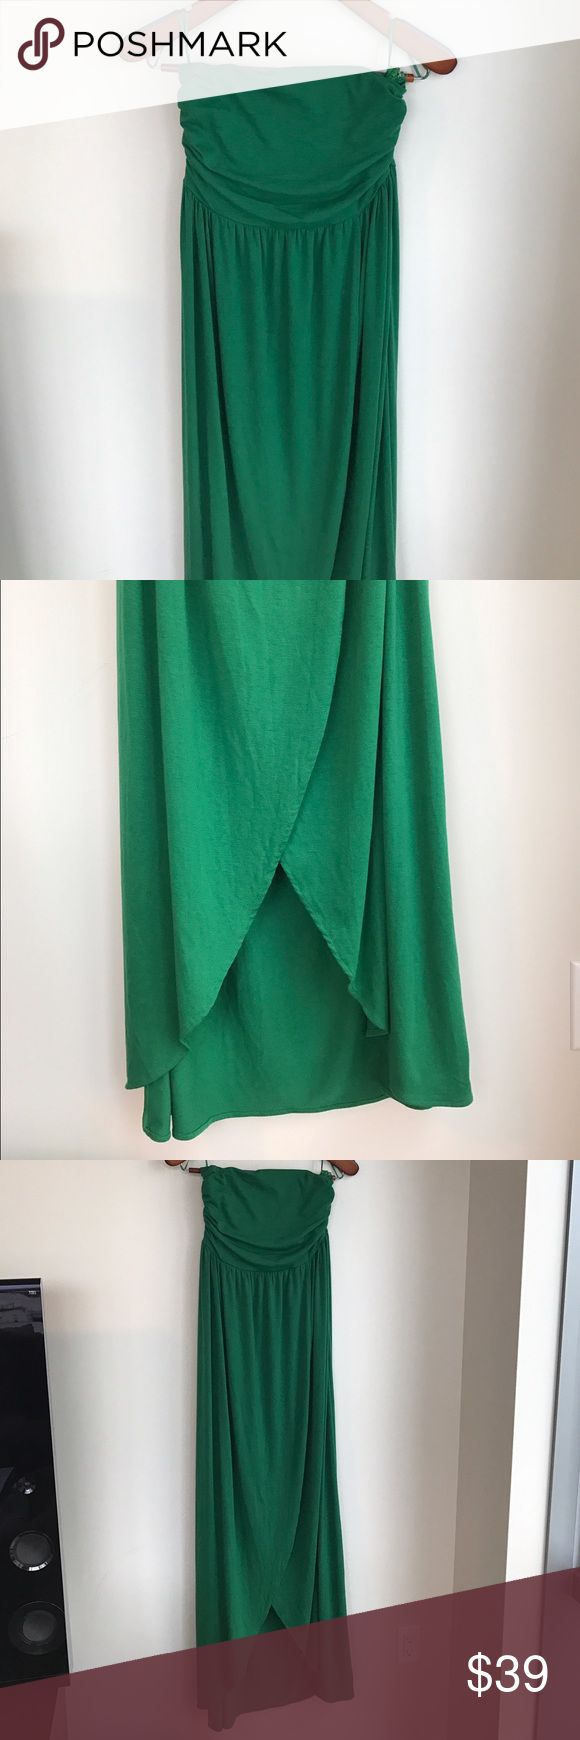 Hive & Honey - Green Strapless Tulip Dress, L NEW WITH TAGS!  This strapless maxi dress is a vibrant shade of Kelly green.  The skirt is a wrap style with a tulip hem that ends at the ankles.  Unfortunately, it's just a little too big on the top for me.  A bustier Posher will fill it out well and look gorgeous in this stunning soft jersey dress -- I'm a 36B for reference.  Let me know if you have any questions! Hive & Honey Dresses Maxi